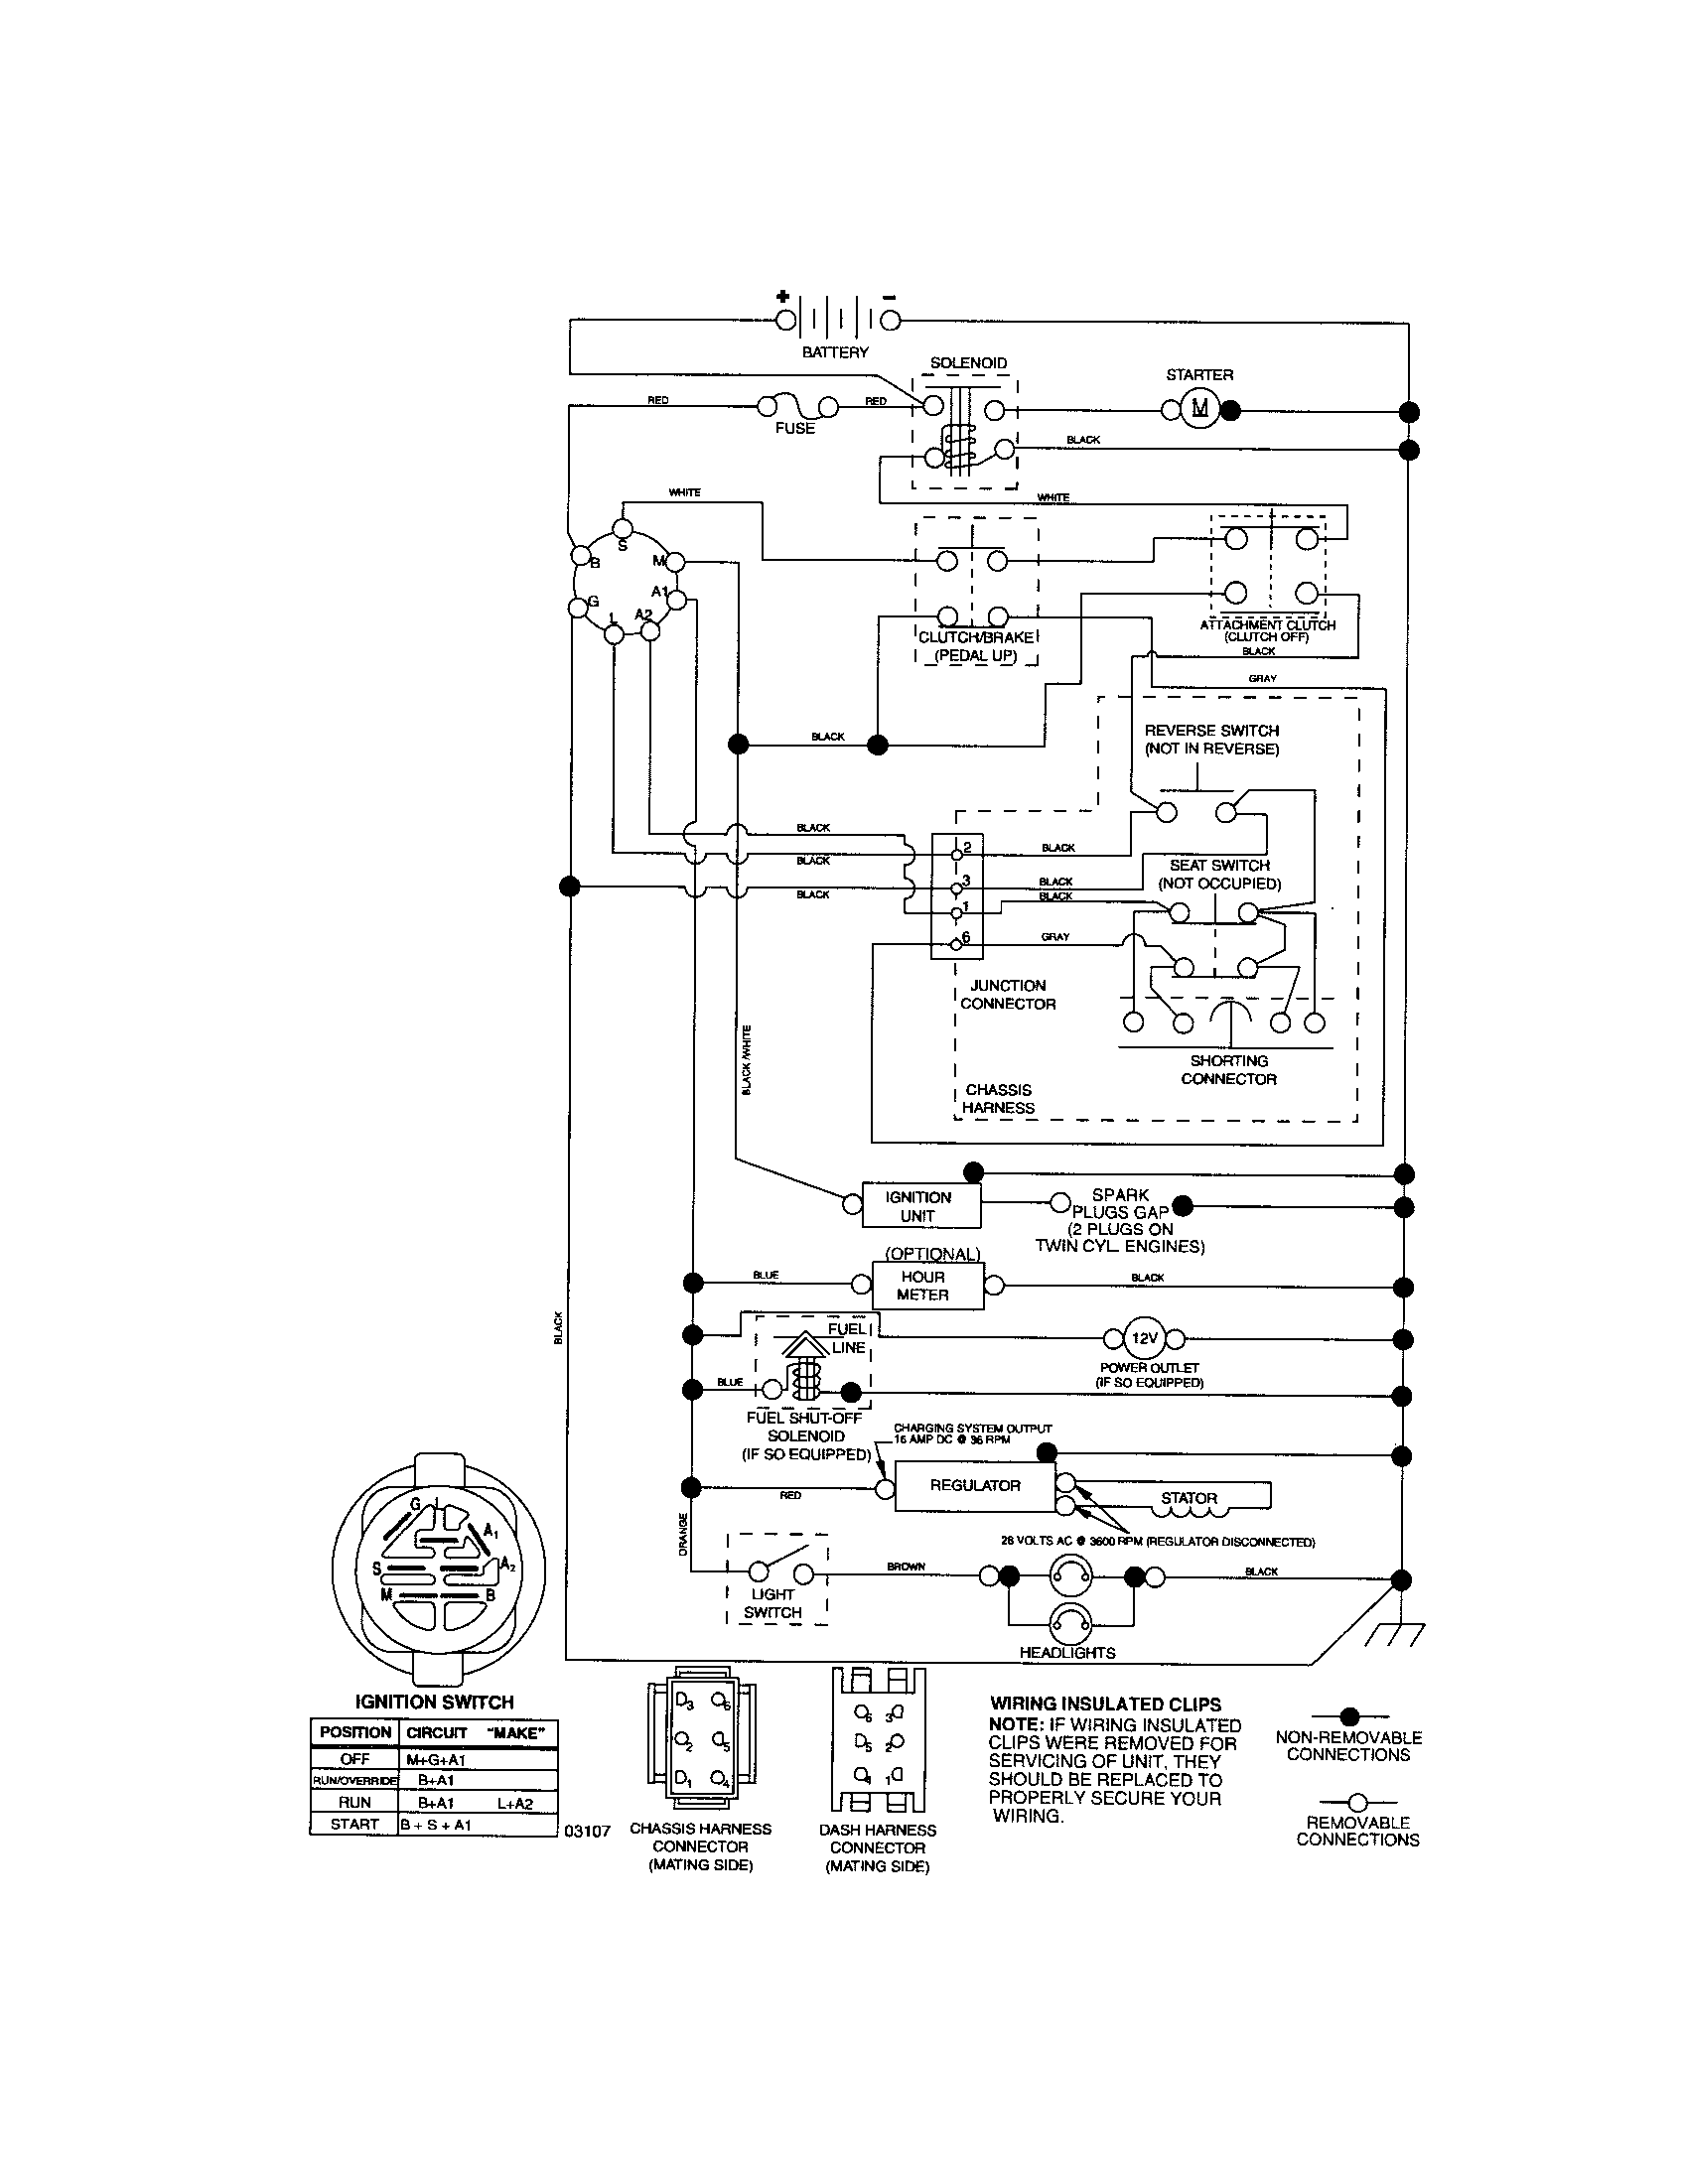 mower wiring diagram craftsman riding mower electrical diagram wiring diagram craftsman riding mower electrical diagram wiring diagram craftsman riding